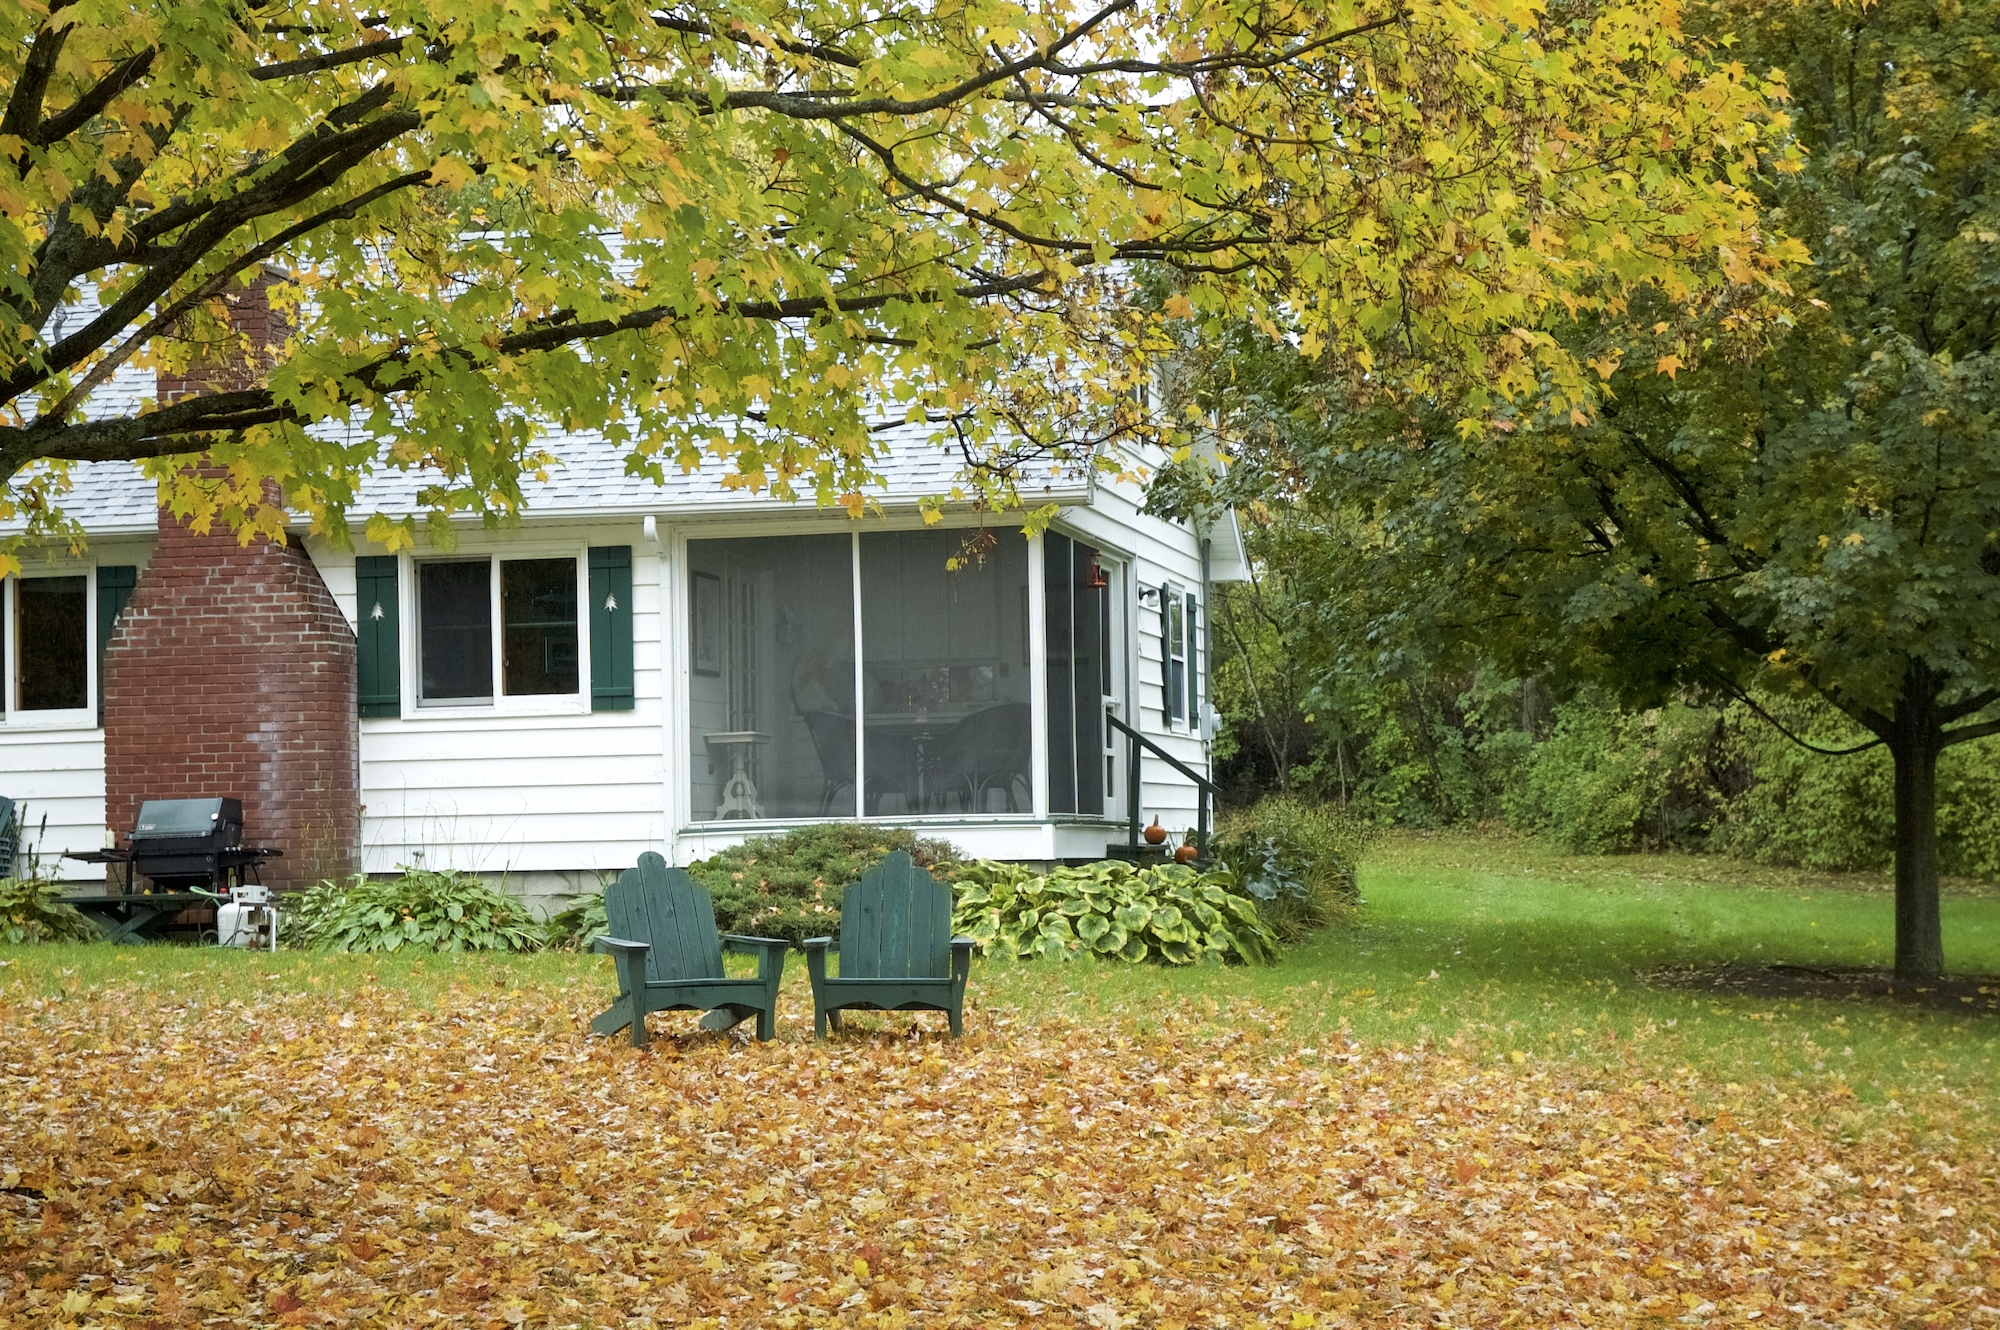 Lake George vacation cabin rental with Adirondack chairs and Fall foliage at Takundewide Cottages on Lake George